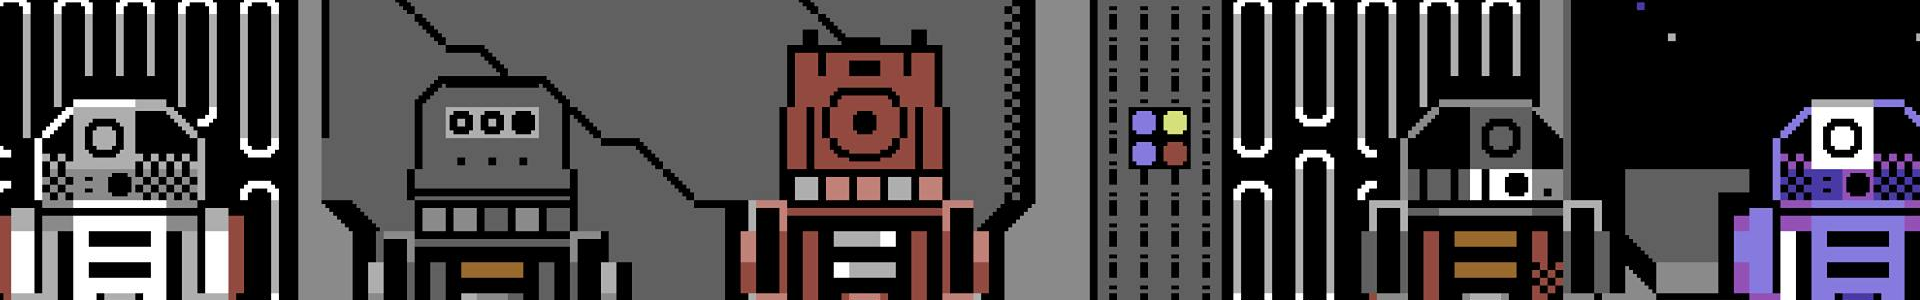 Uncle PETSCII's Droids of Star Wars (TRIAD/UPDOSW)